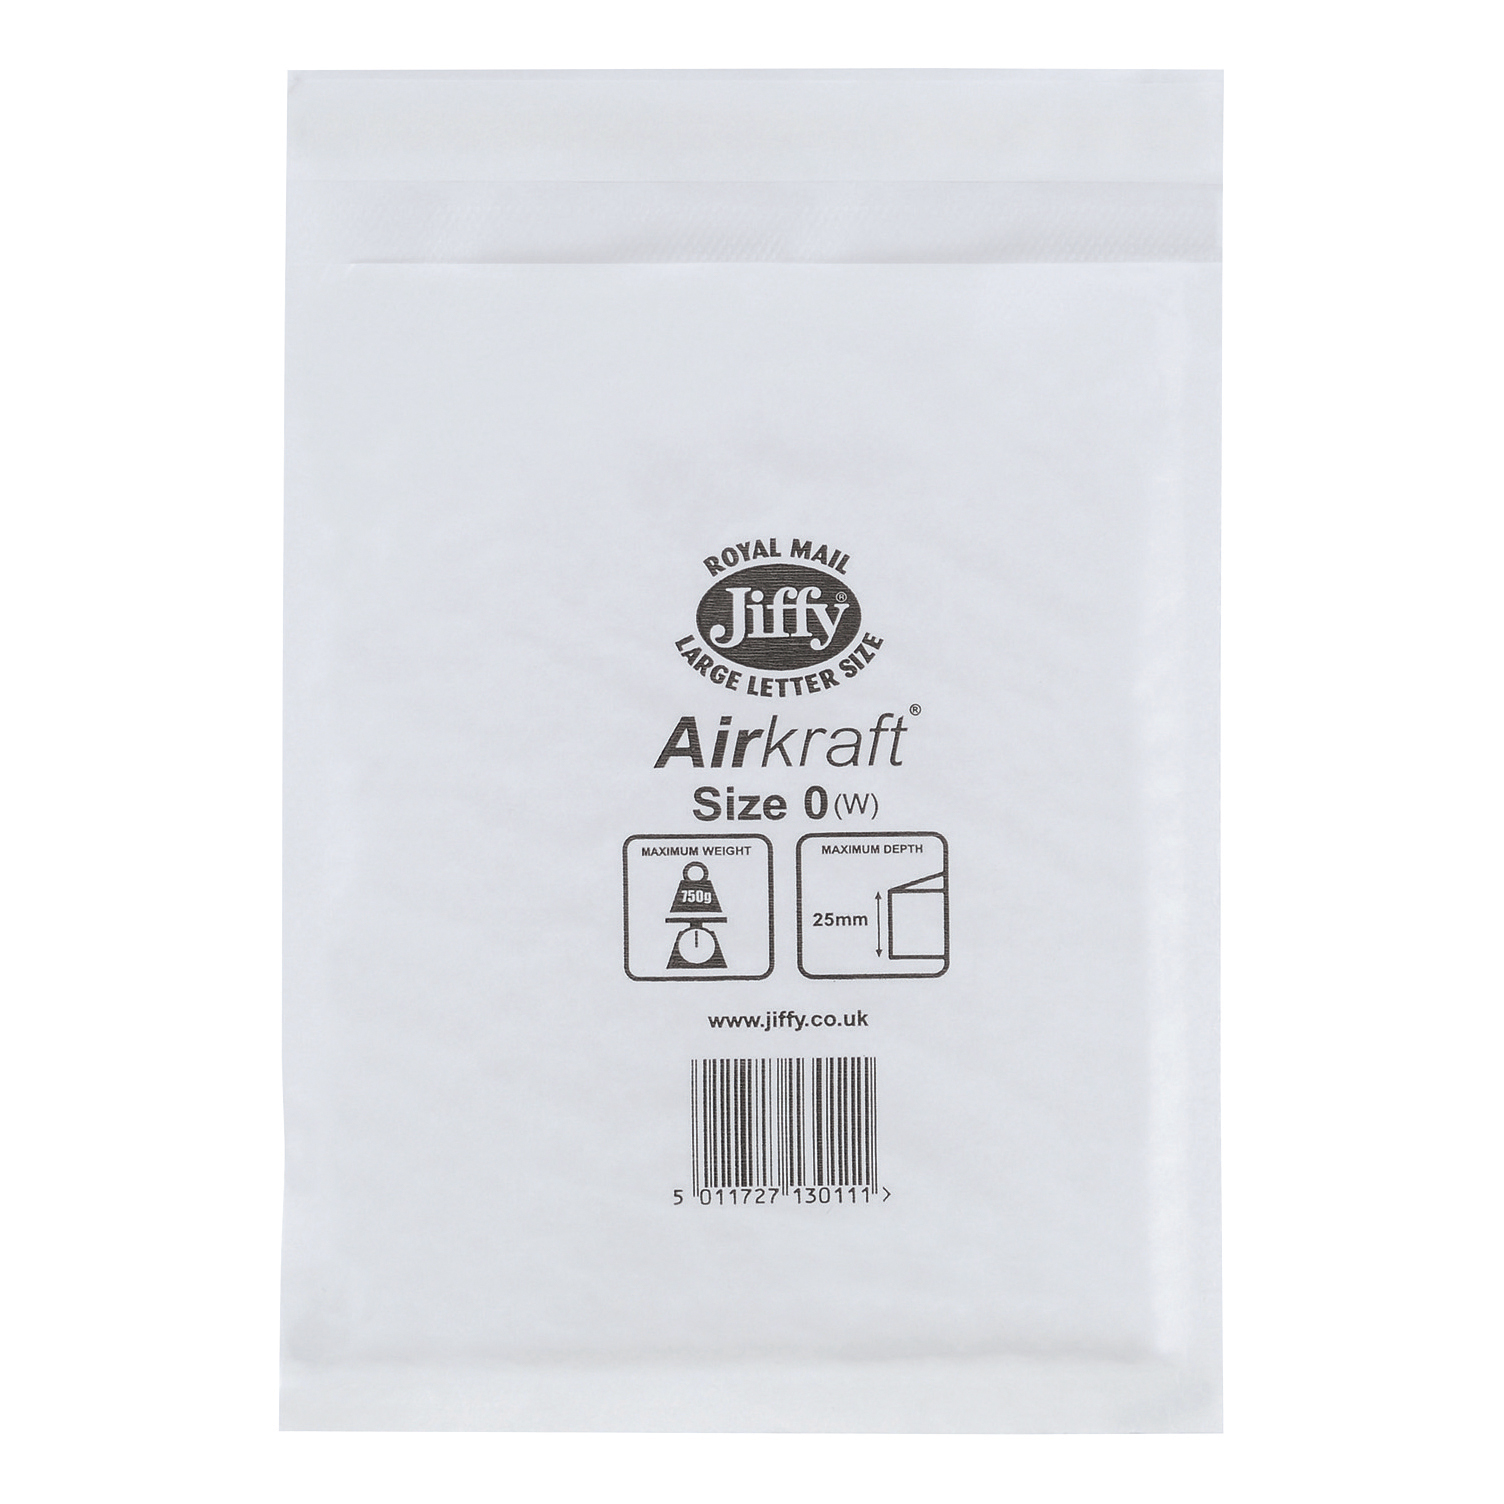 Padded Bags & Envelopes Jiffy Airkraft Bag Bubble-lined Peel and Seal Size 0 White 140x195mm Ref JL-0 [Pack 100]